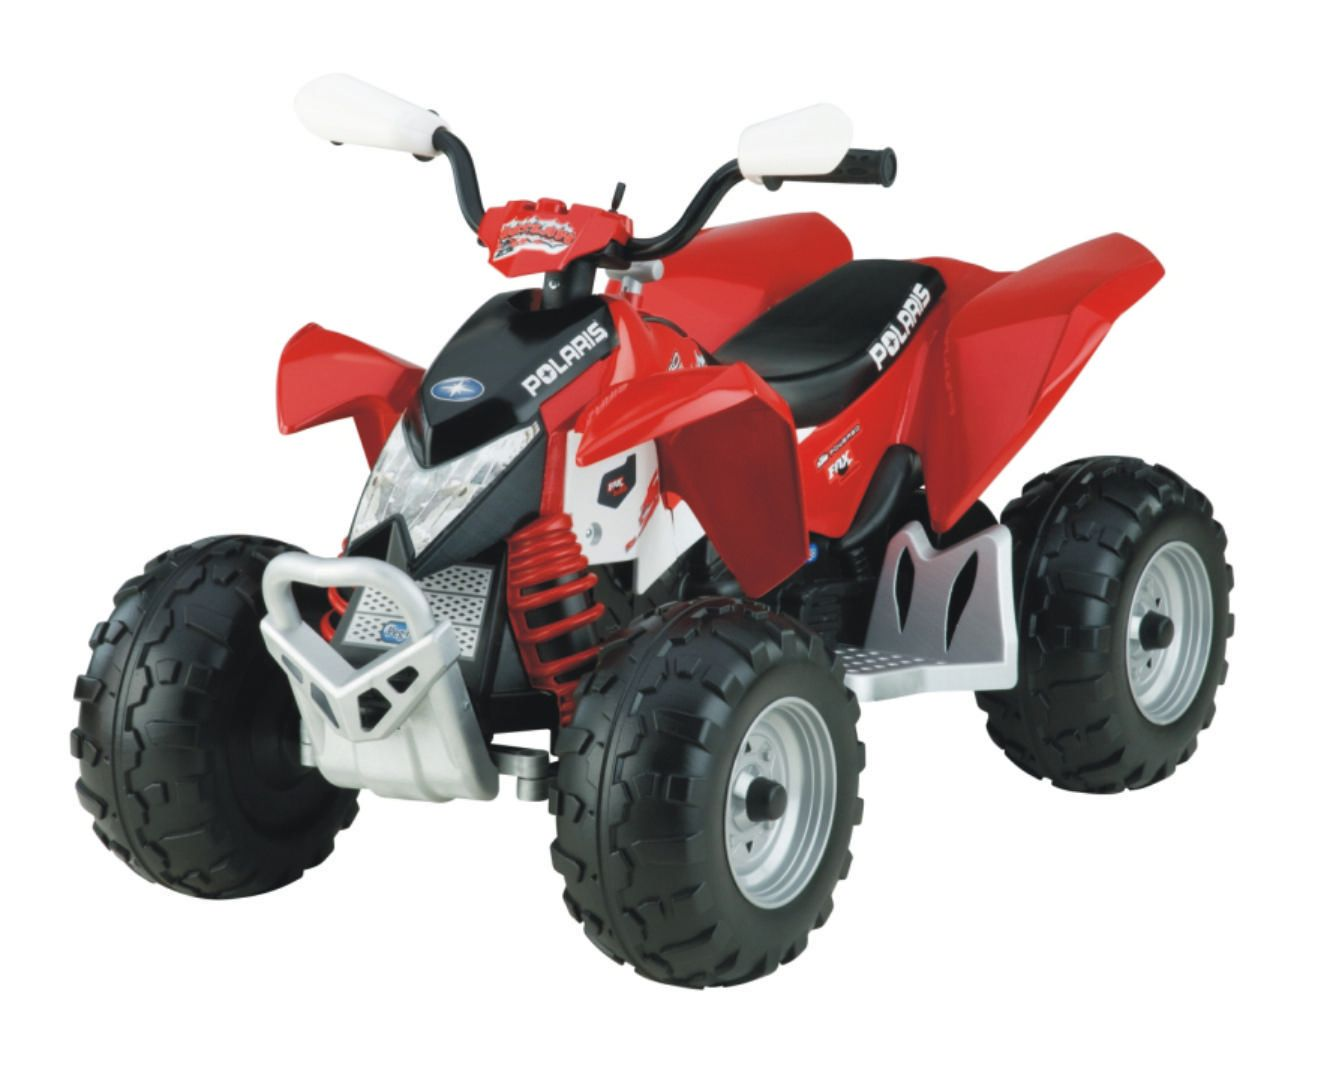 Peg Perego Polaris Outlaw Ride-on Vehicle - Red | Walmart Canada